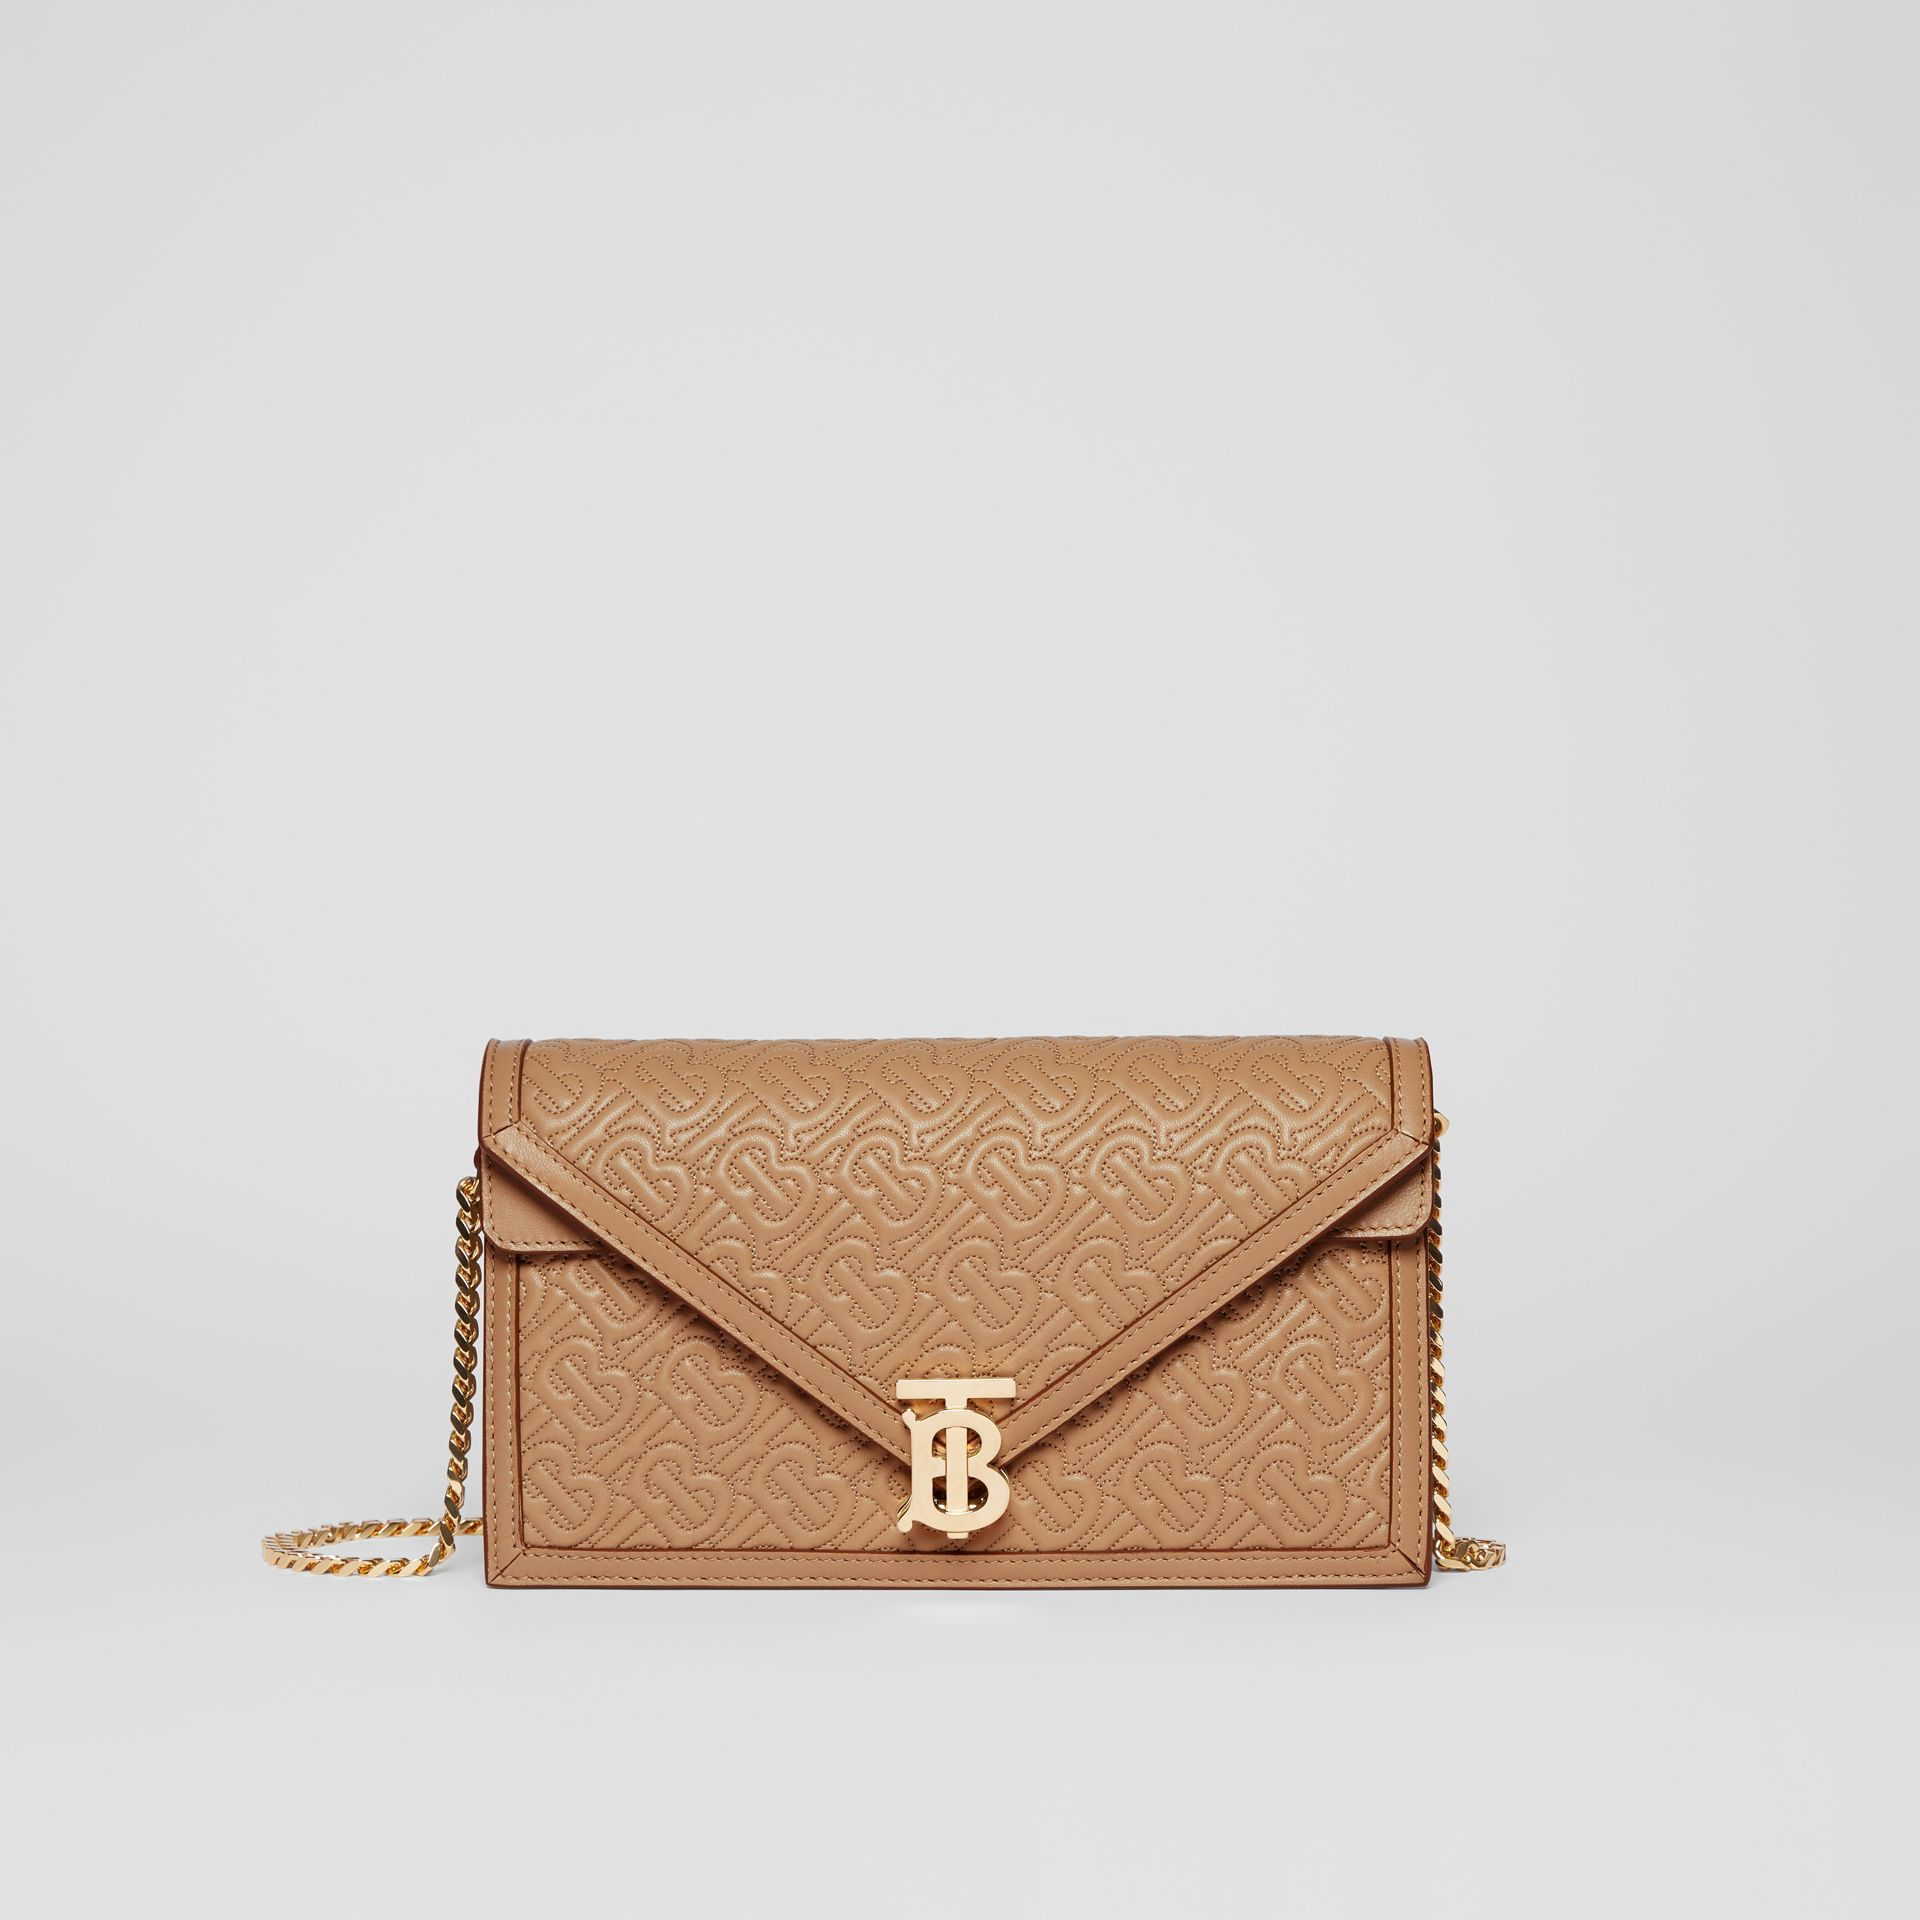 Small Quilted Monogram TB Envelope Clutch in Honey - Women | Burberry United Kingdom - gallery image 0